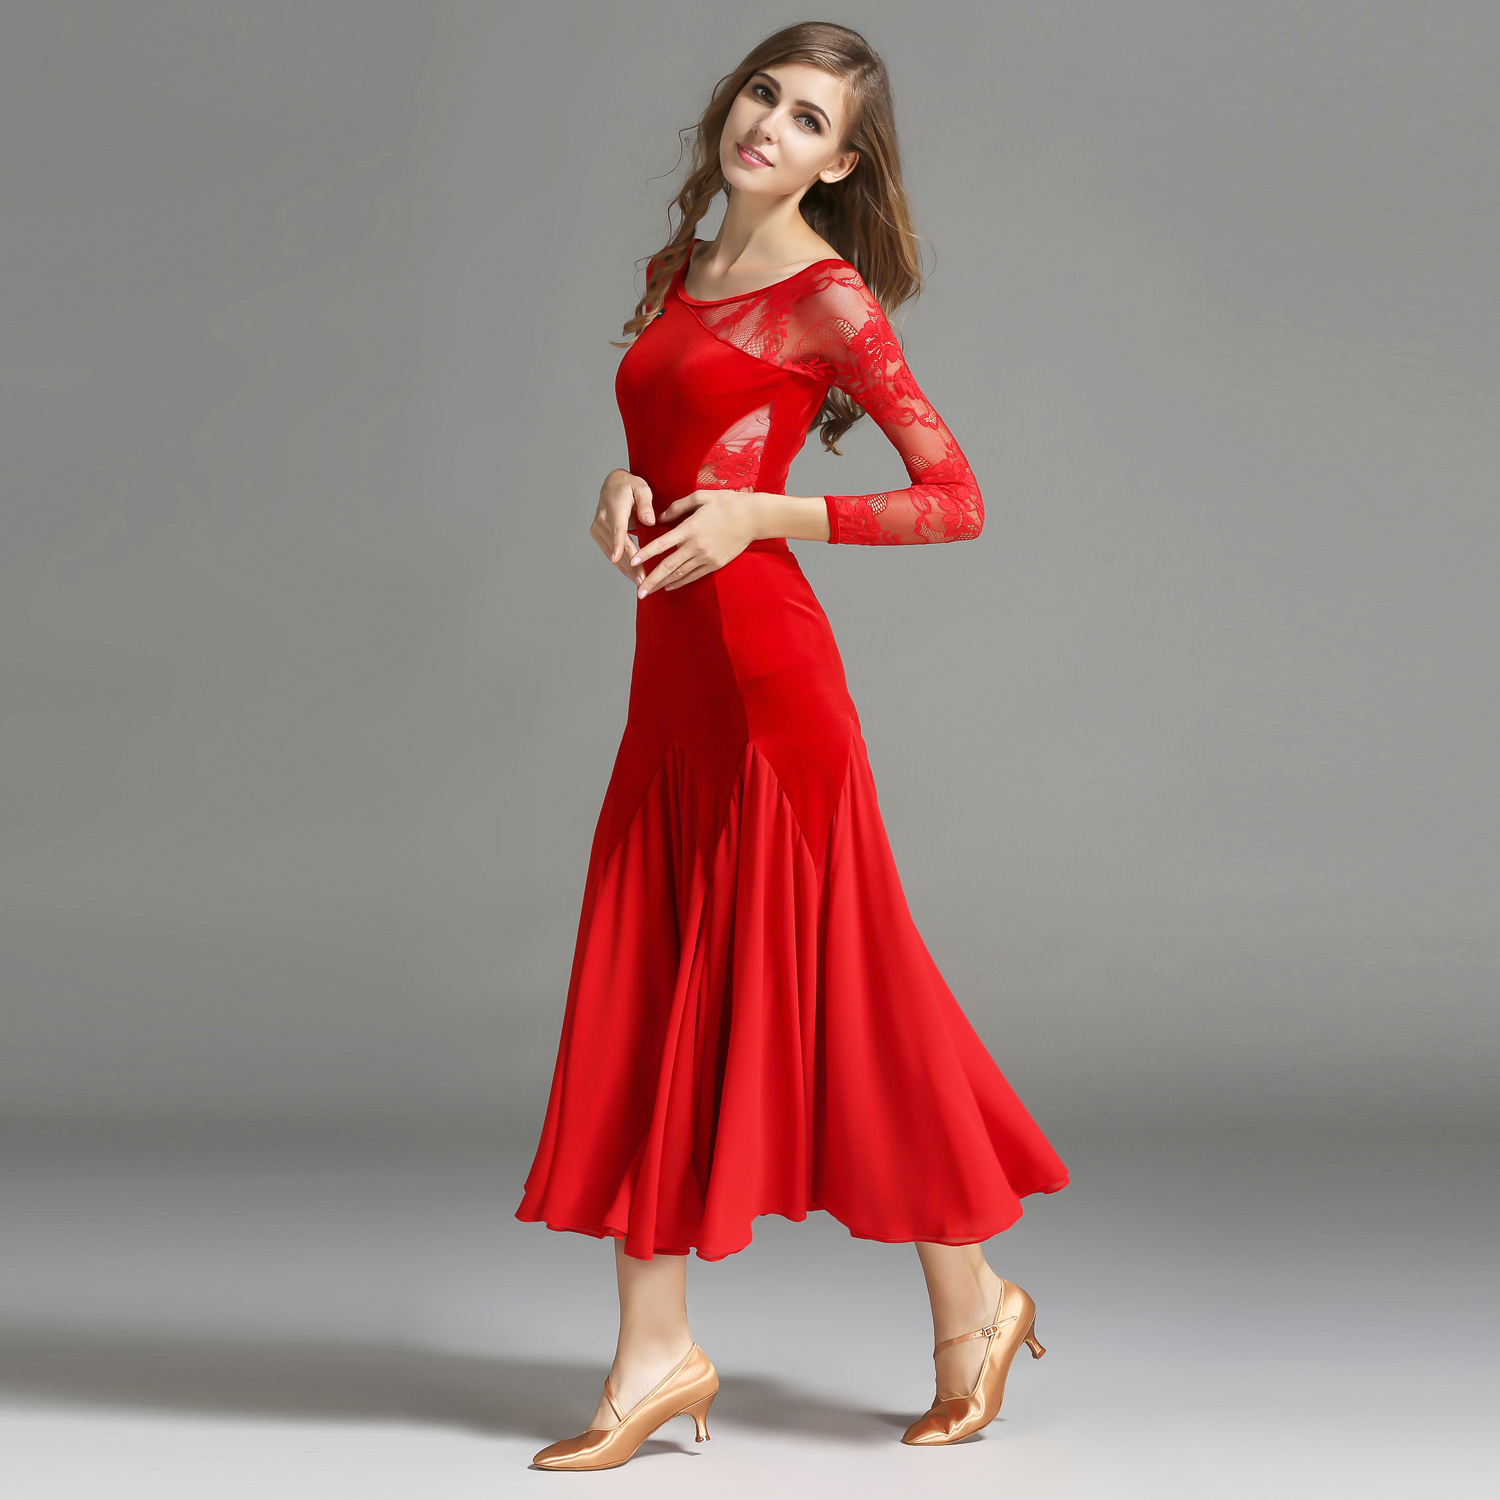 Modern Dance Costume Top and Skirt Suits Dance Dress Ballroom Costume Women Lady Adult Evening Party Dress Practice Clothes 1846 and 1847 latin dance top and skirt suits dance dress ballroom costume leotard women lady adult evening party dress